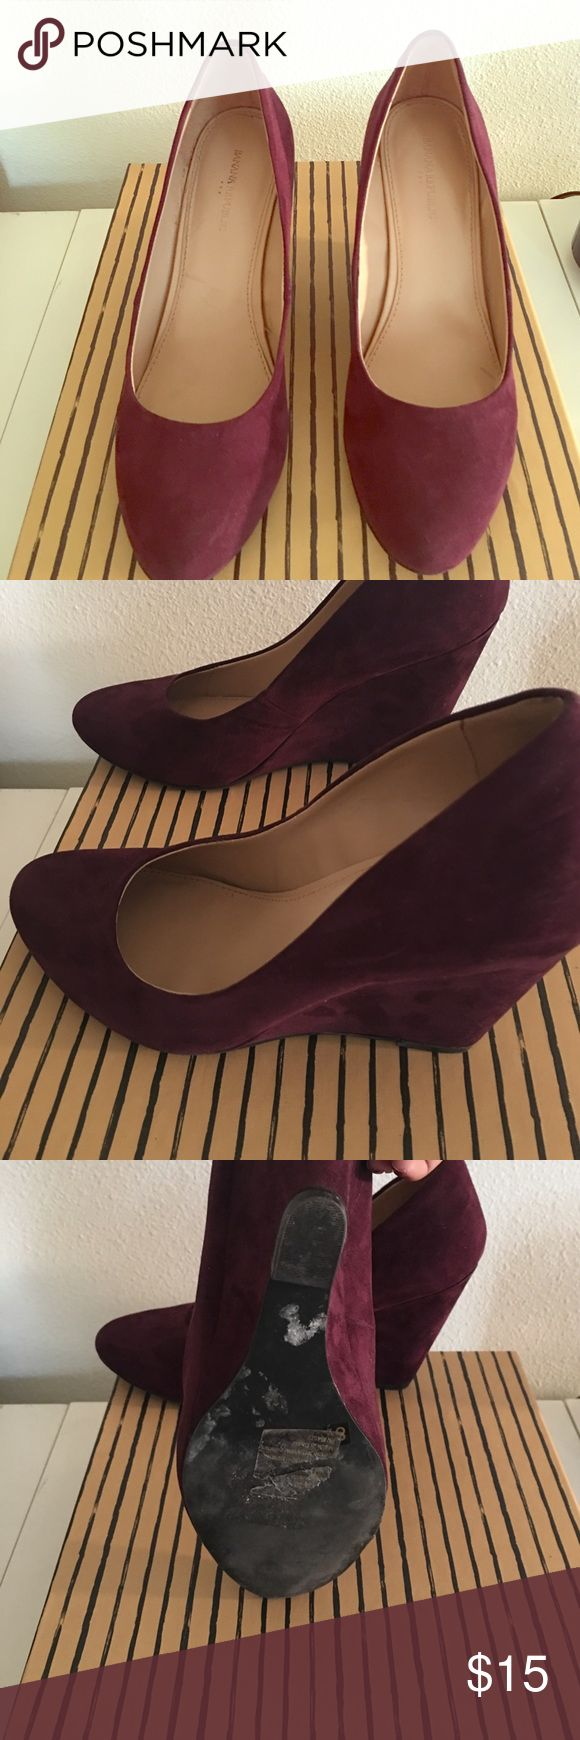 Wedges, plum color Banana Republic, used once Banana Republic Shoes Wedges